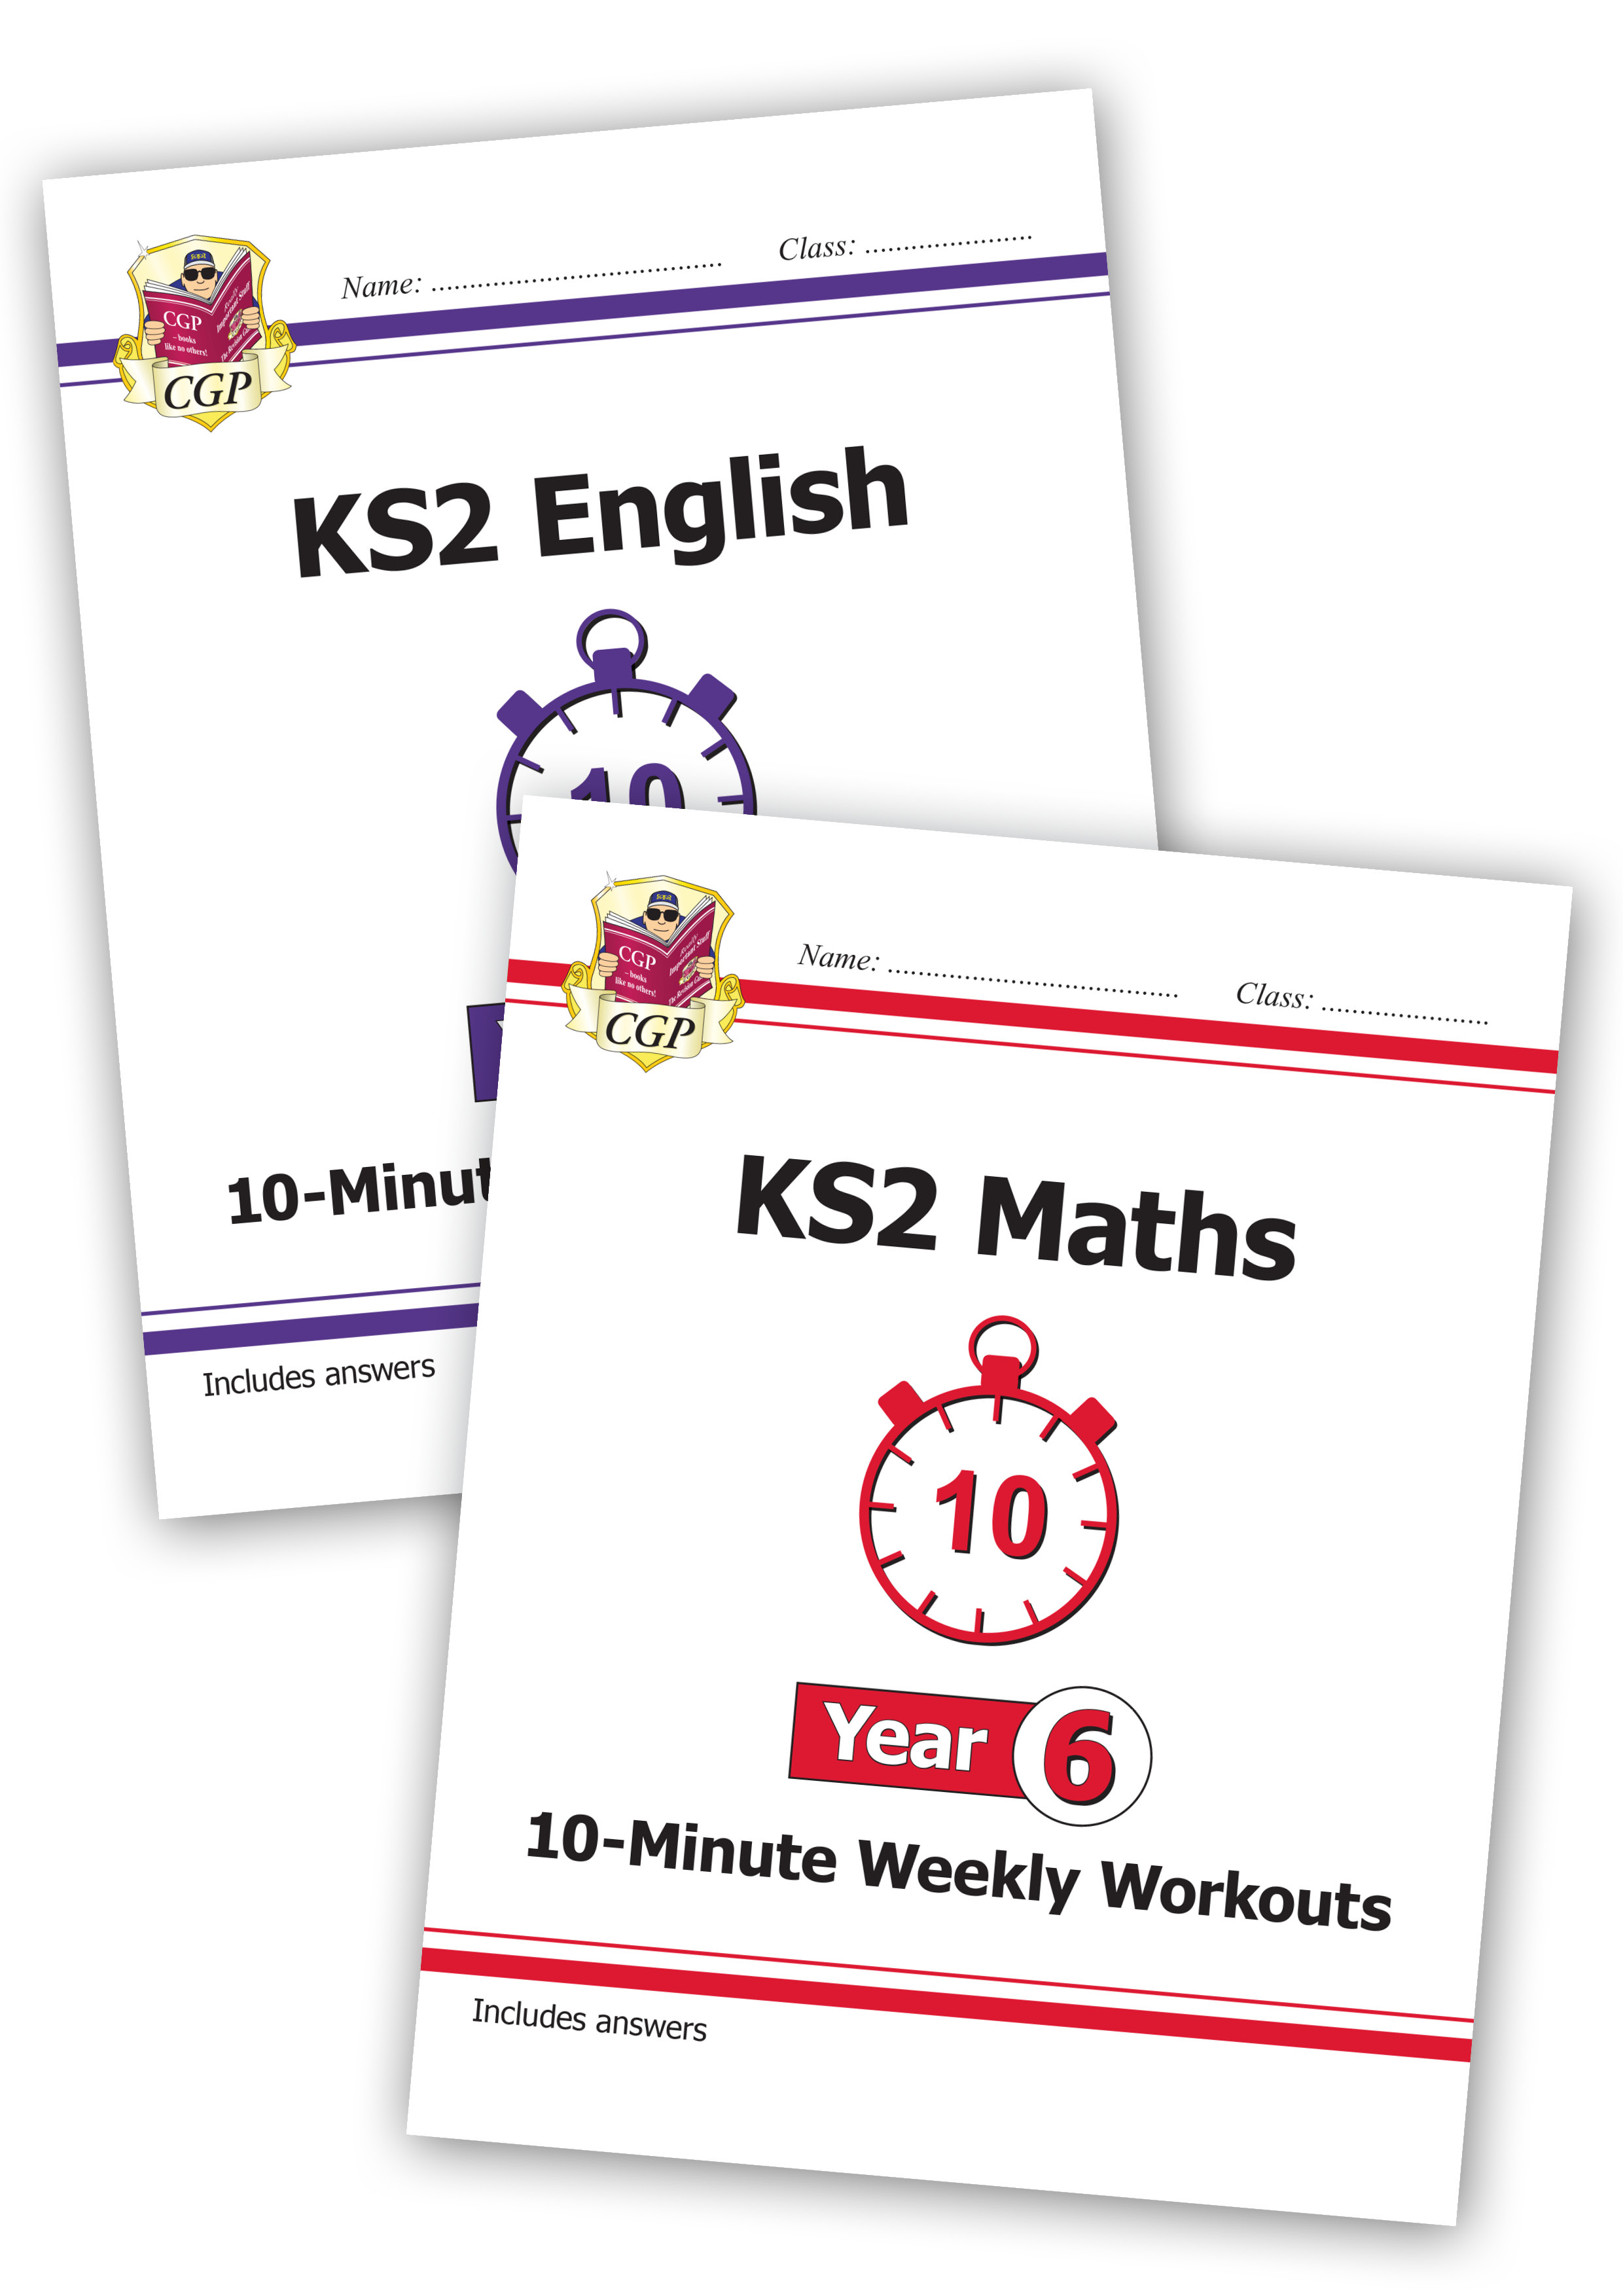 EM6XWB21 - KS2 Maths and English 10-Minute Weekly Workouts Bundle - Year 6